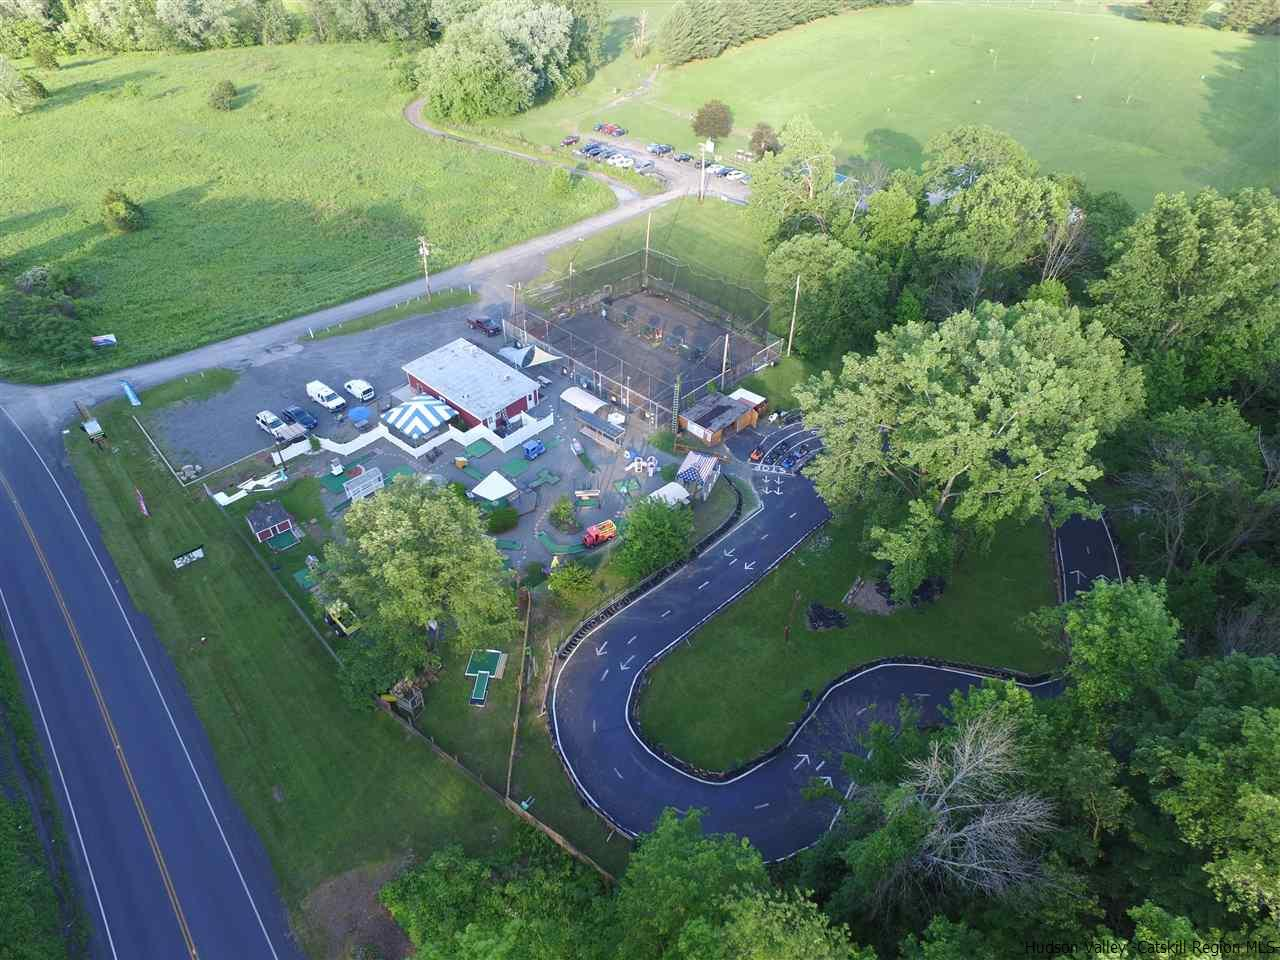 Single Family Home for Sale at 180 Sawkill Road 180 Sawkill Road Kingston, New York 12401 United States